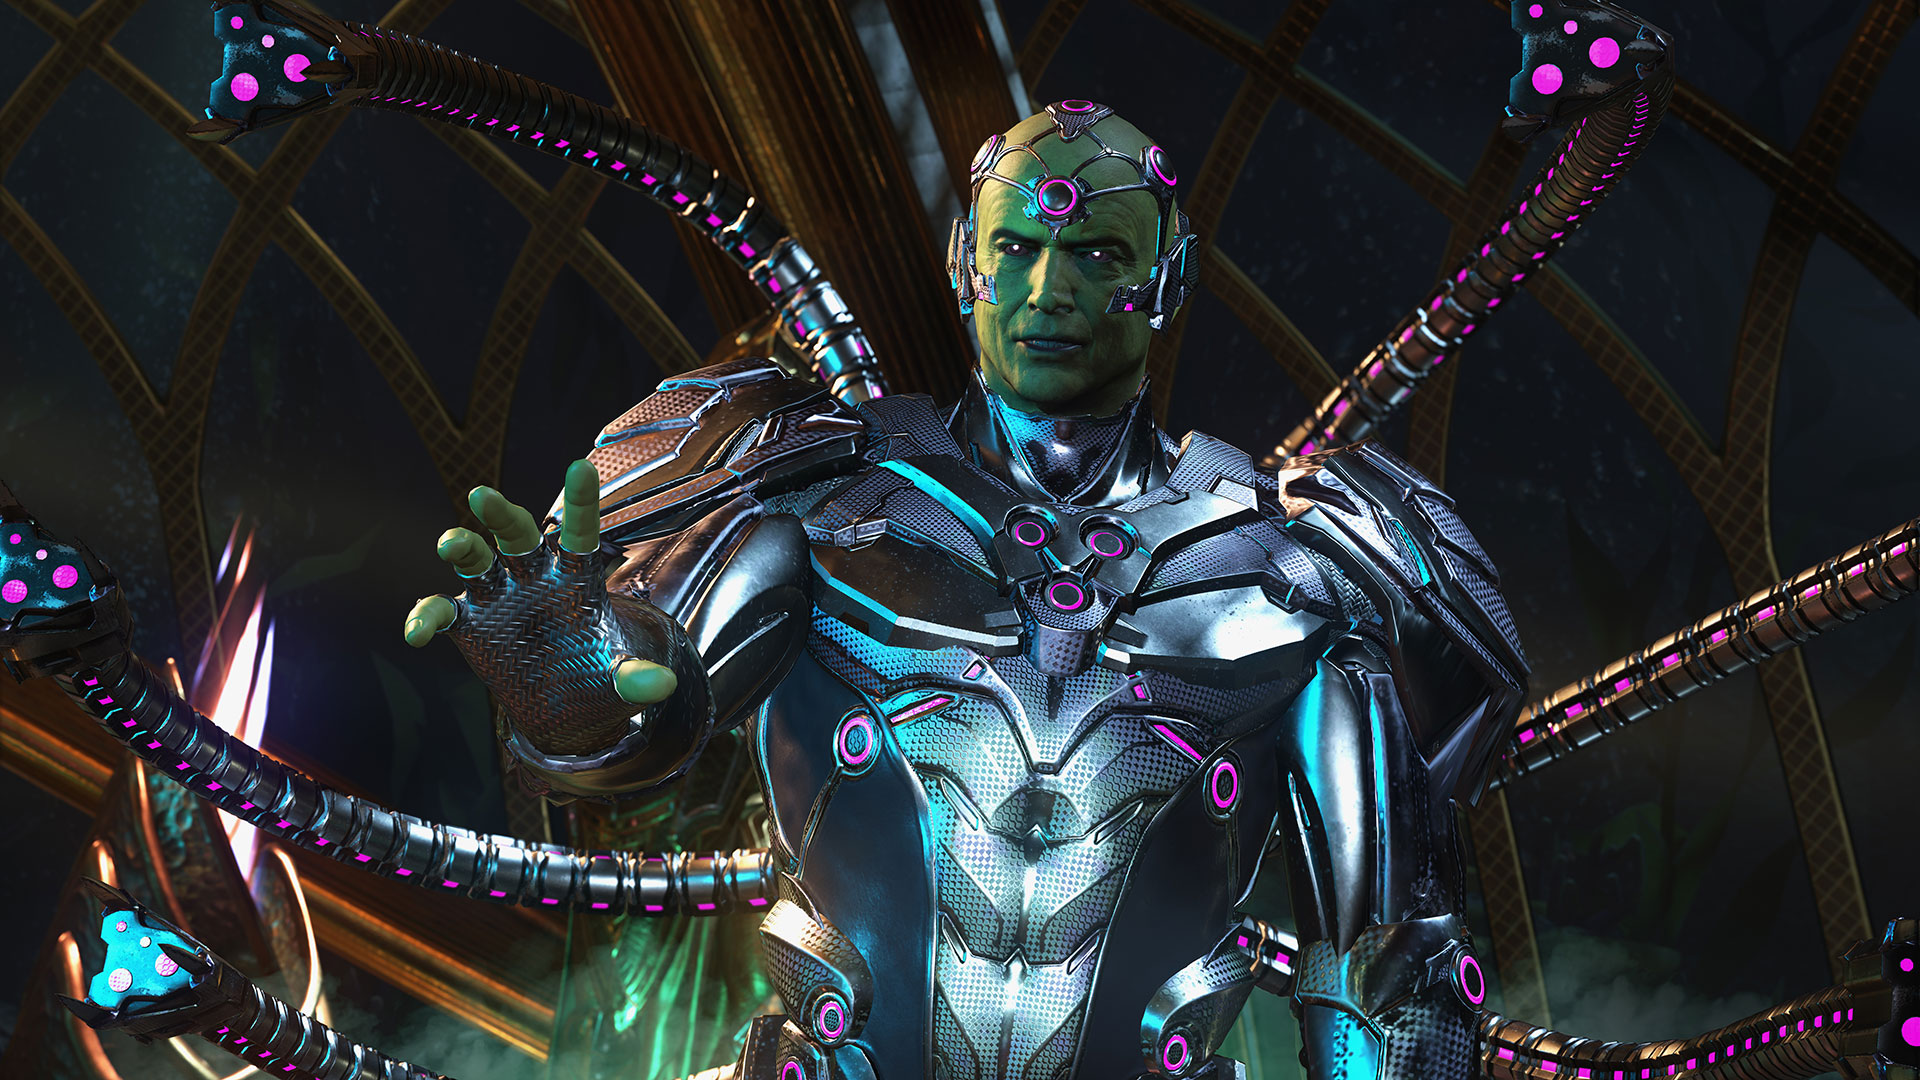 Brainiac, voiced by Jeffrey Combs, seeks to add the final two surviving Kryptonians to his collection of civilizations before setting his sights on Earth as the next target for his destructive power